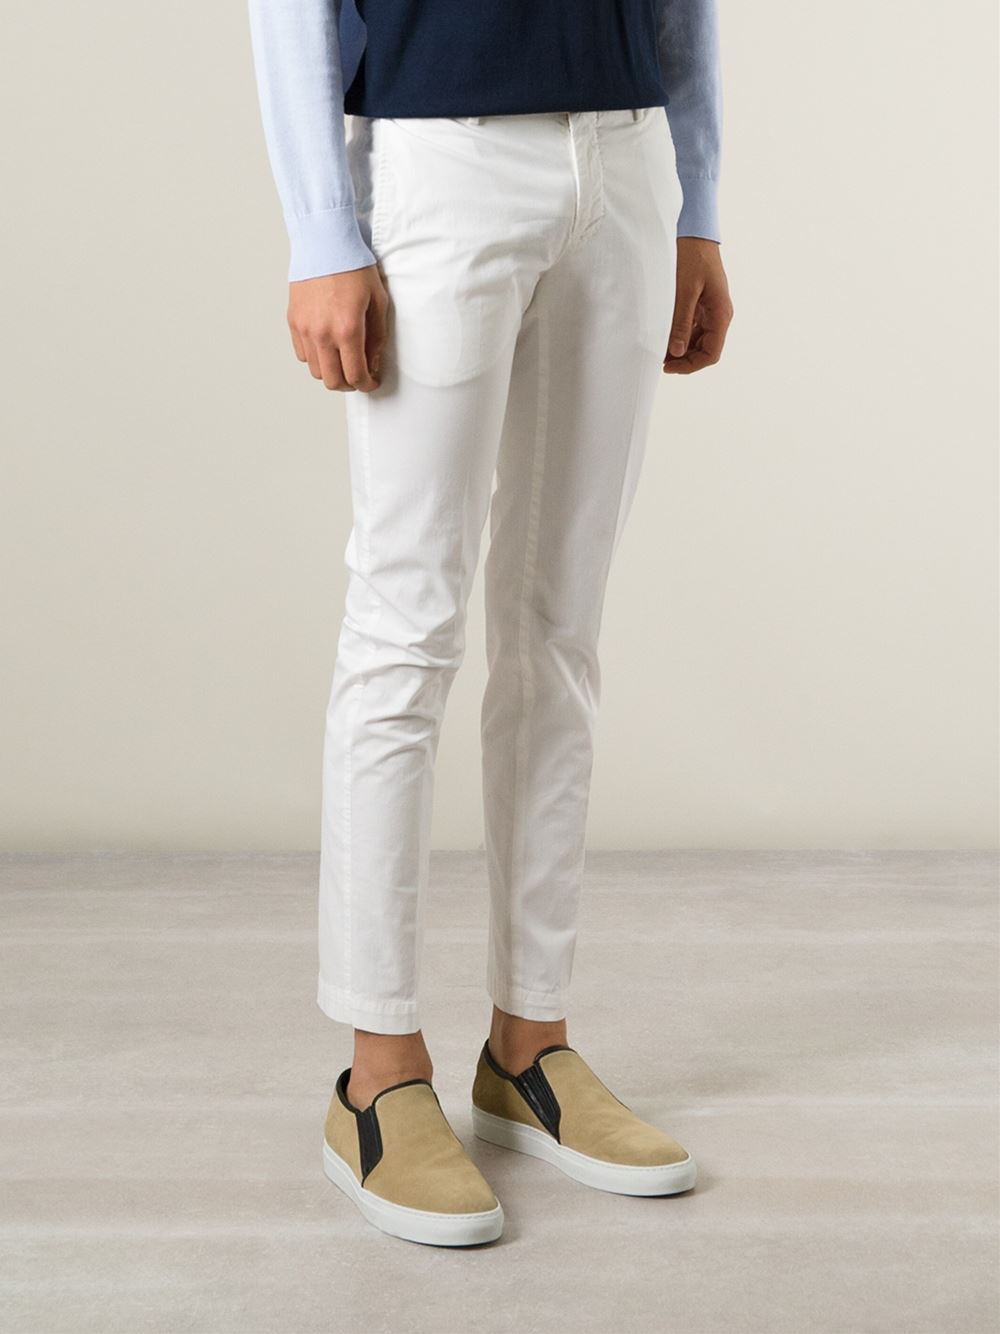 cropped chinos - White PT01 Cheap Big Discount In China For Sale Natural And Freely Low Cost Cheap Price Cheap Sale Outlet Store v5uw6T